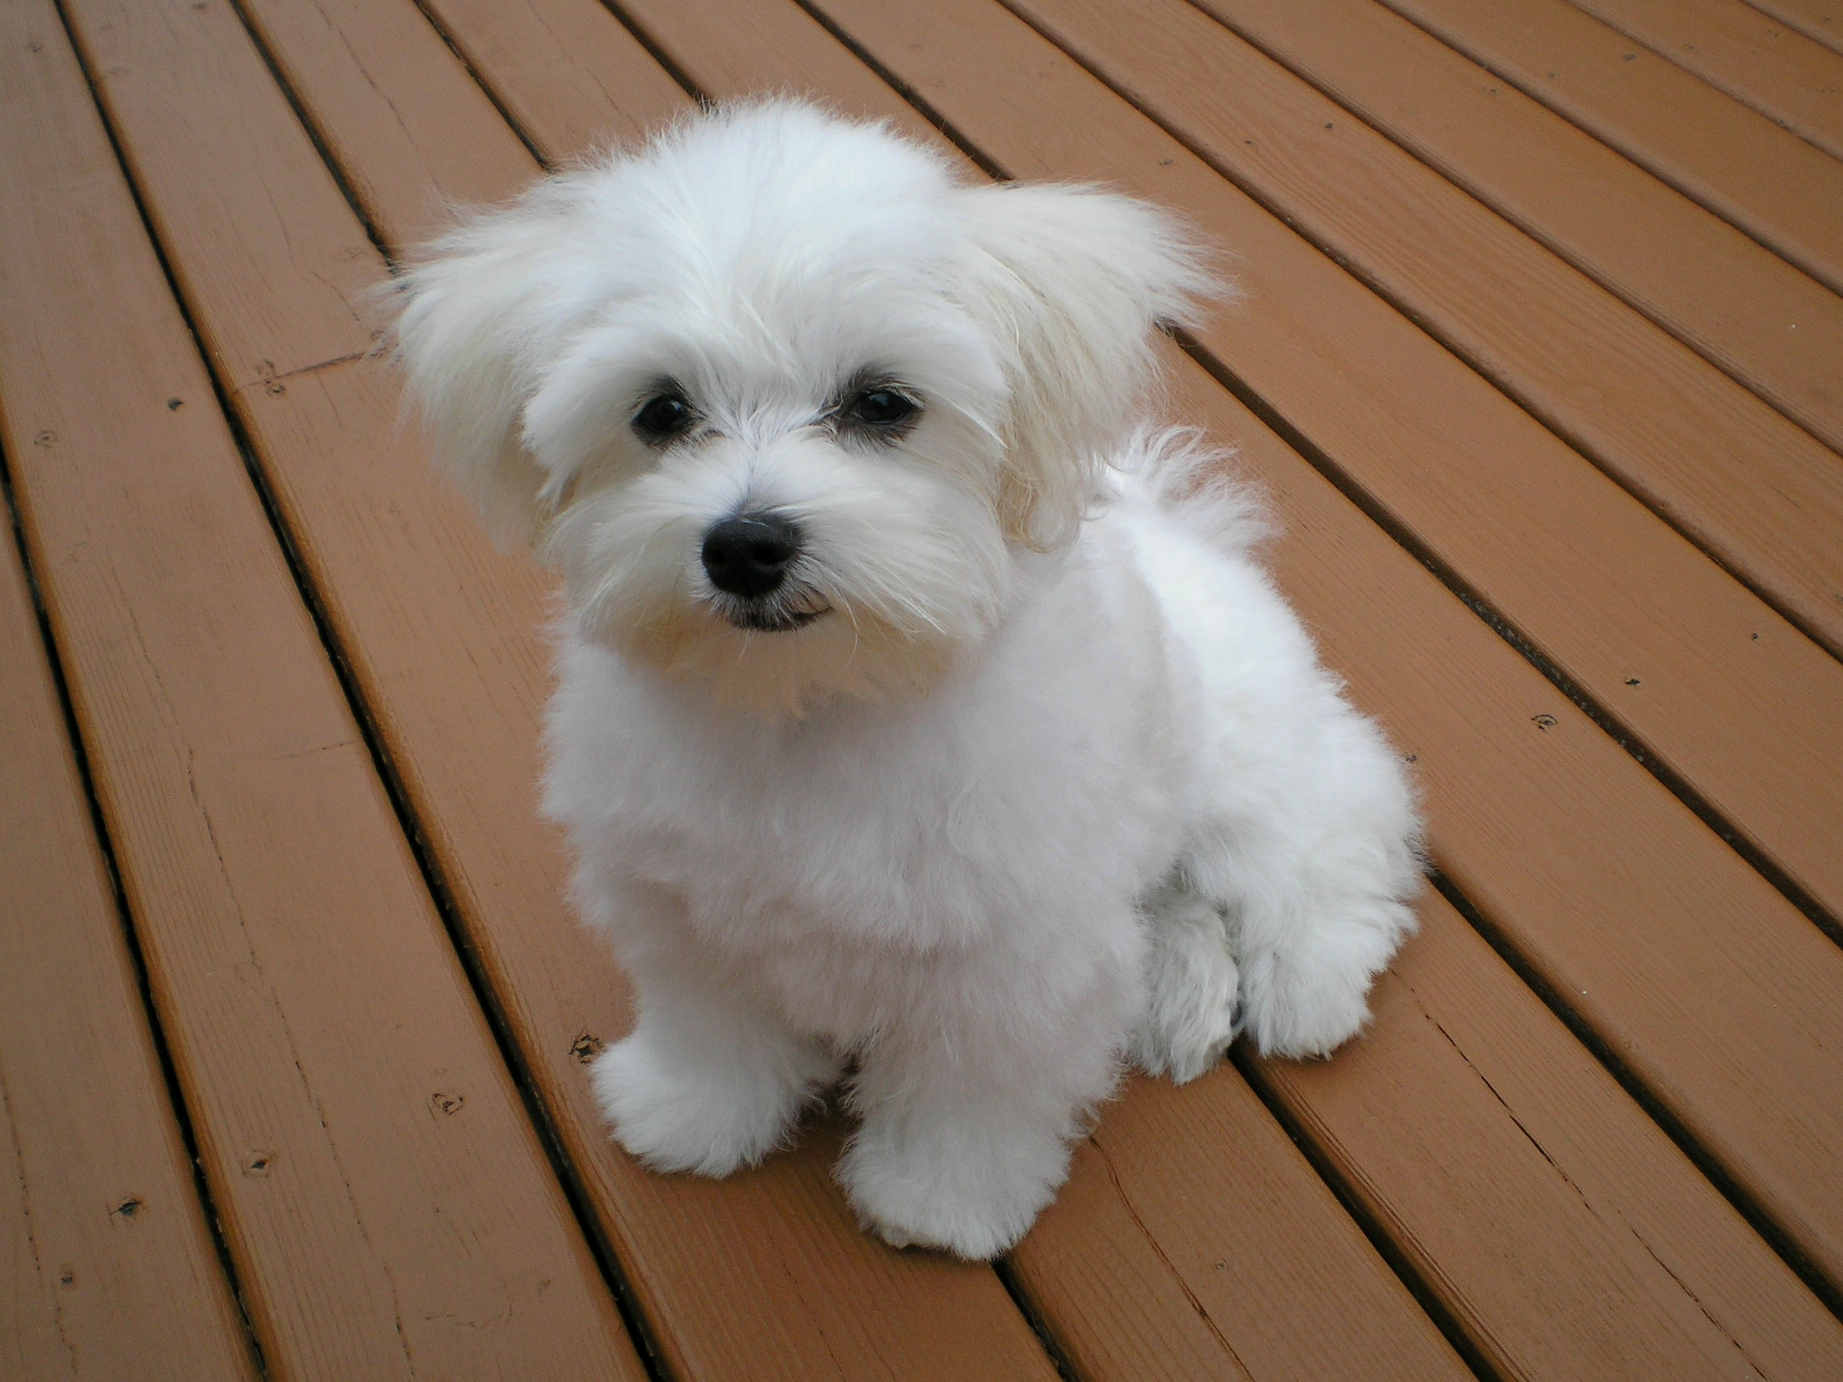 File:Maltese puppy.jpeg - Wikimedia Commons